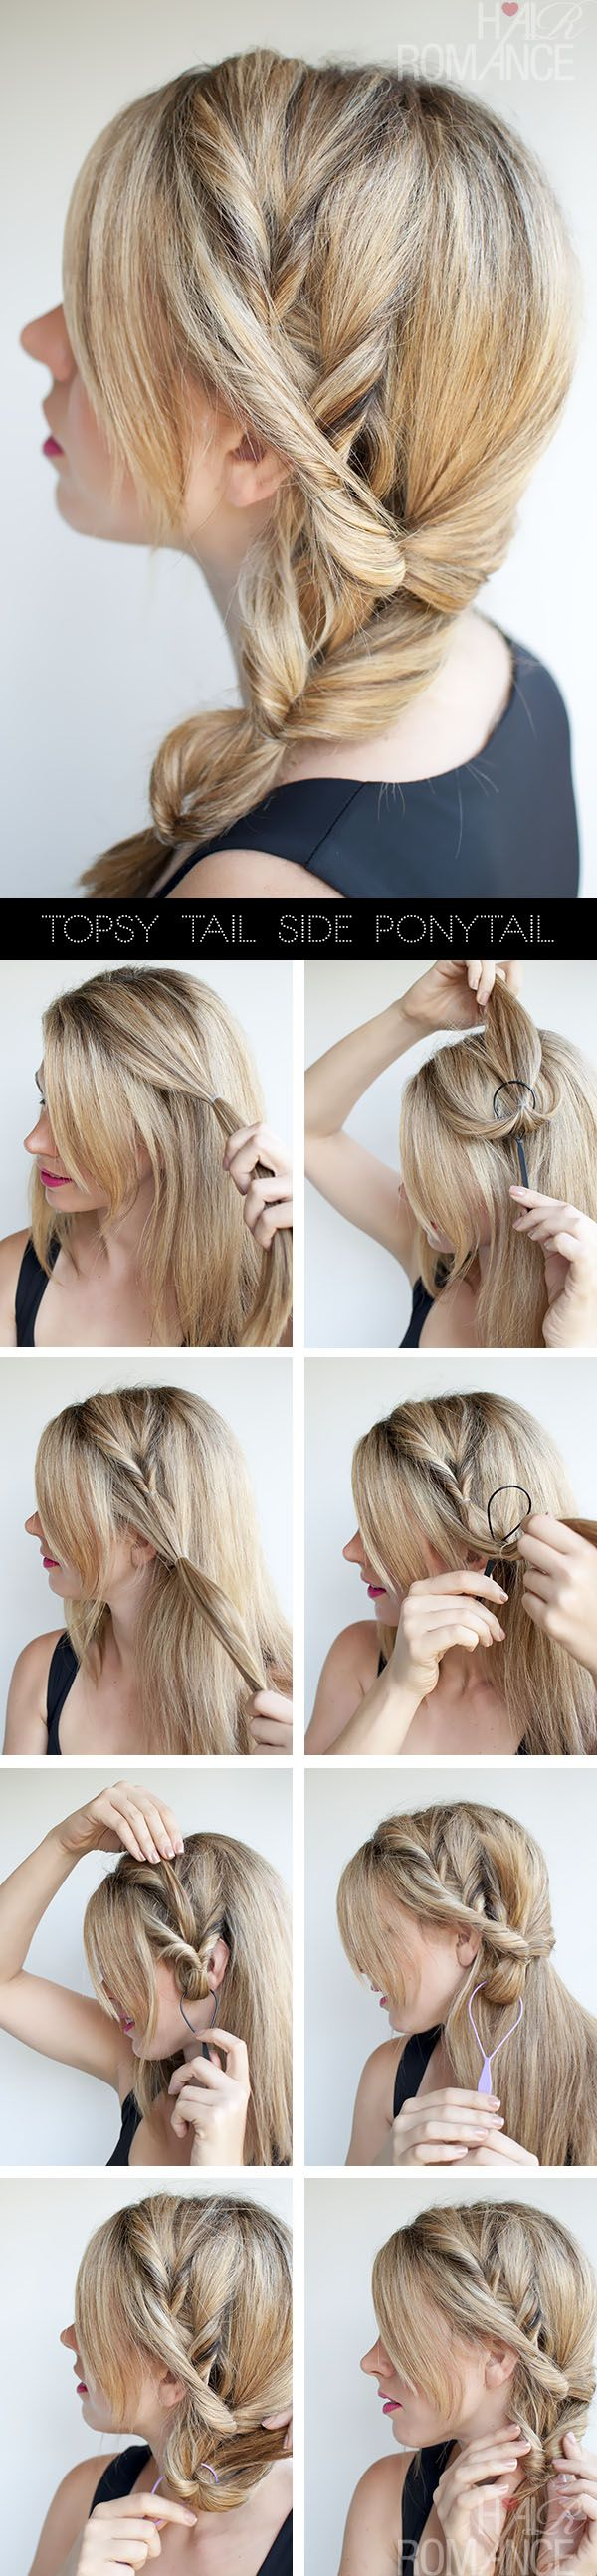 Topsy Tail Ponytail tutorial - the no-braid side braid..you don't need the topsy tail thing, just to be careful when you make a hole in the hair and bring your hair through it FACILISIMO!!